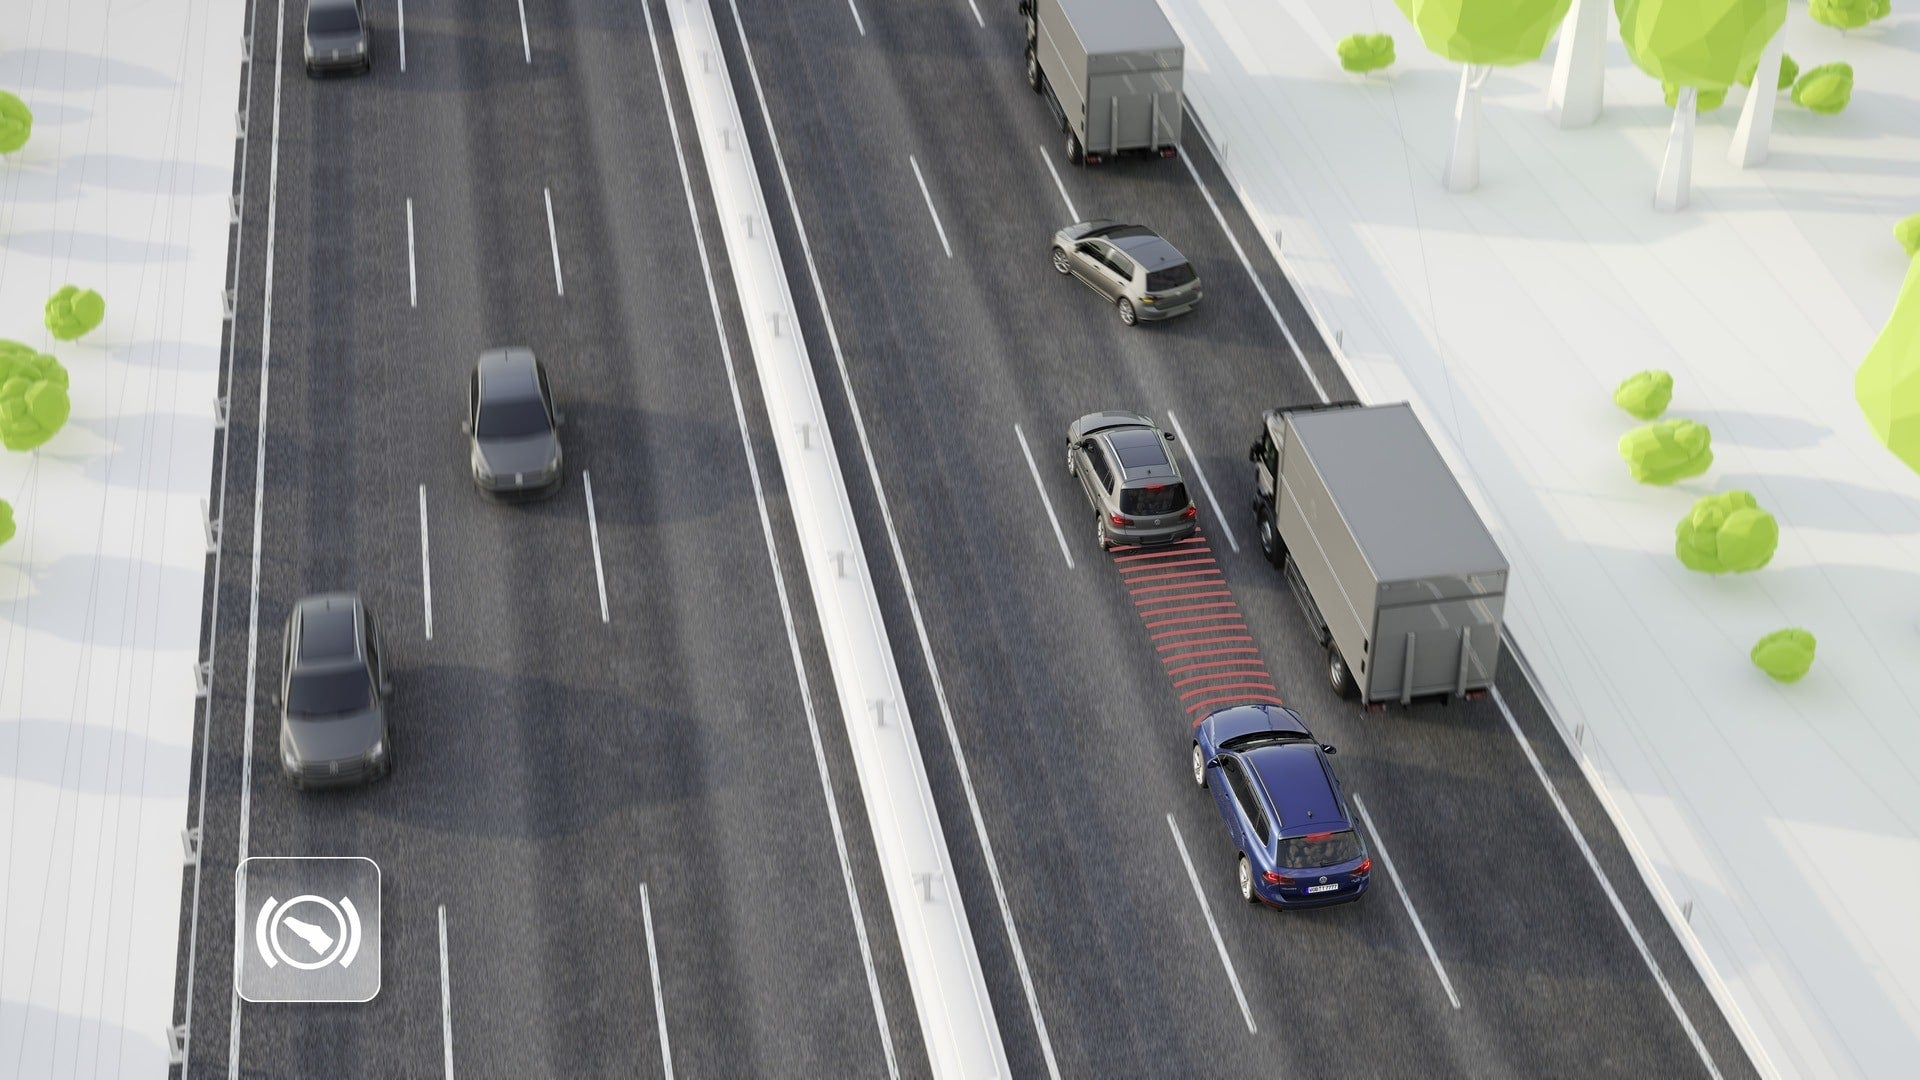 Adaptive Cruise Control: What It Is & How It Works